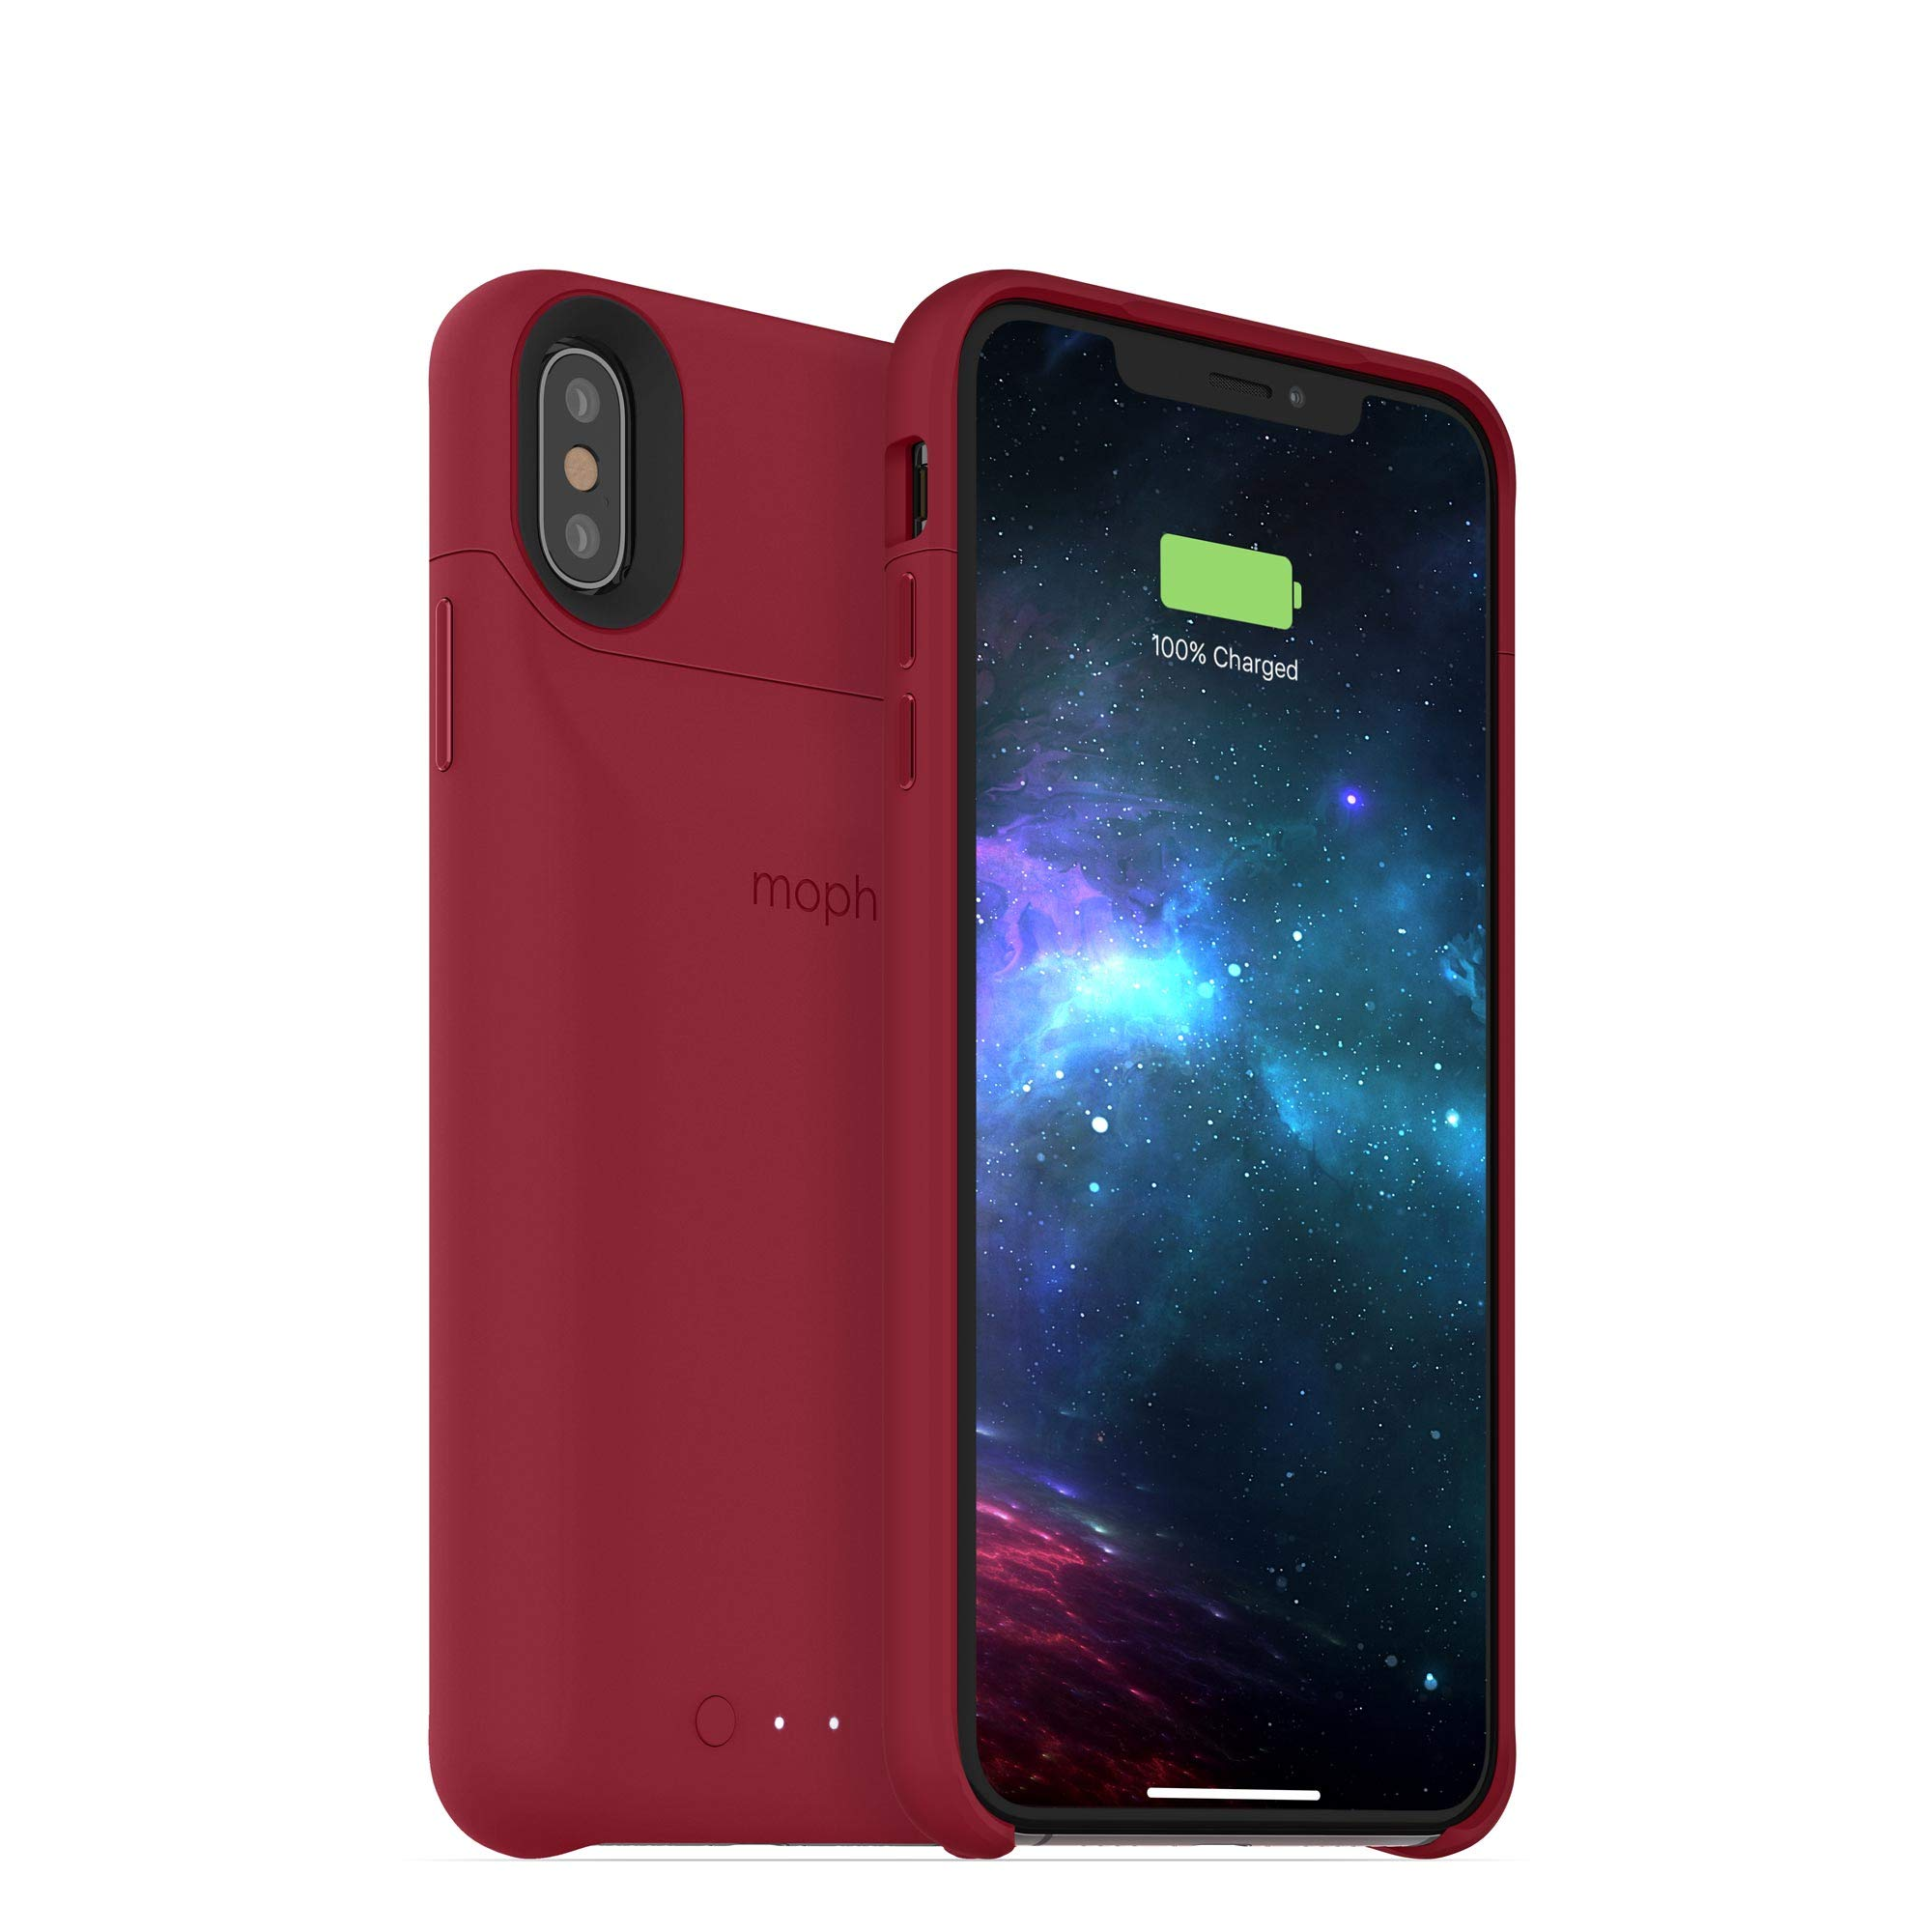 mophie Juice Pack Access Battery Case Made for Apple iPhone Xs Max (2,200mAh) - Dark Red